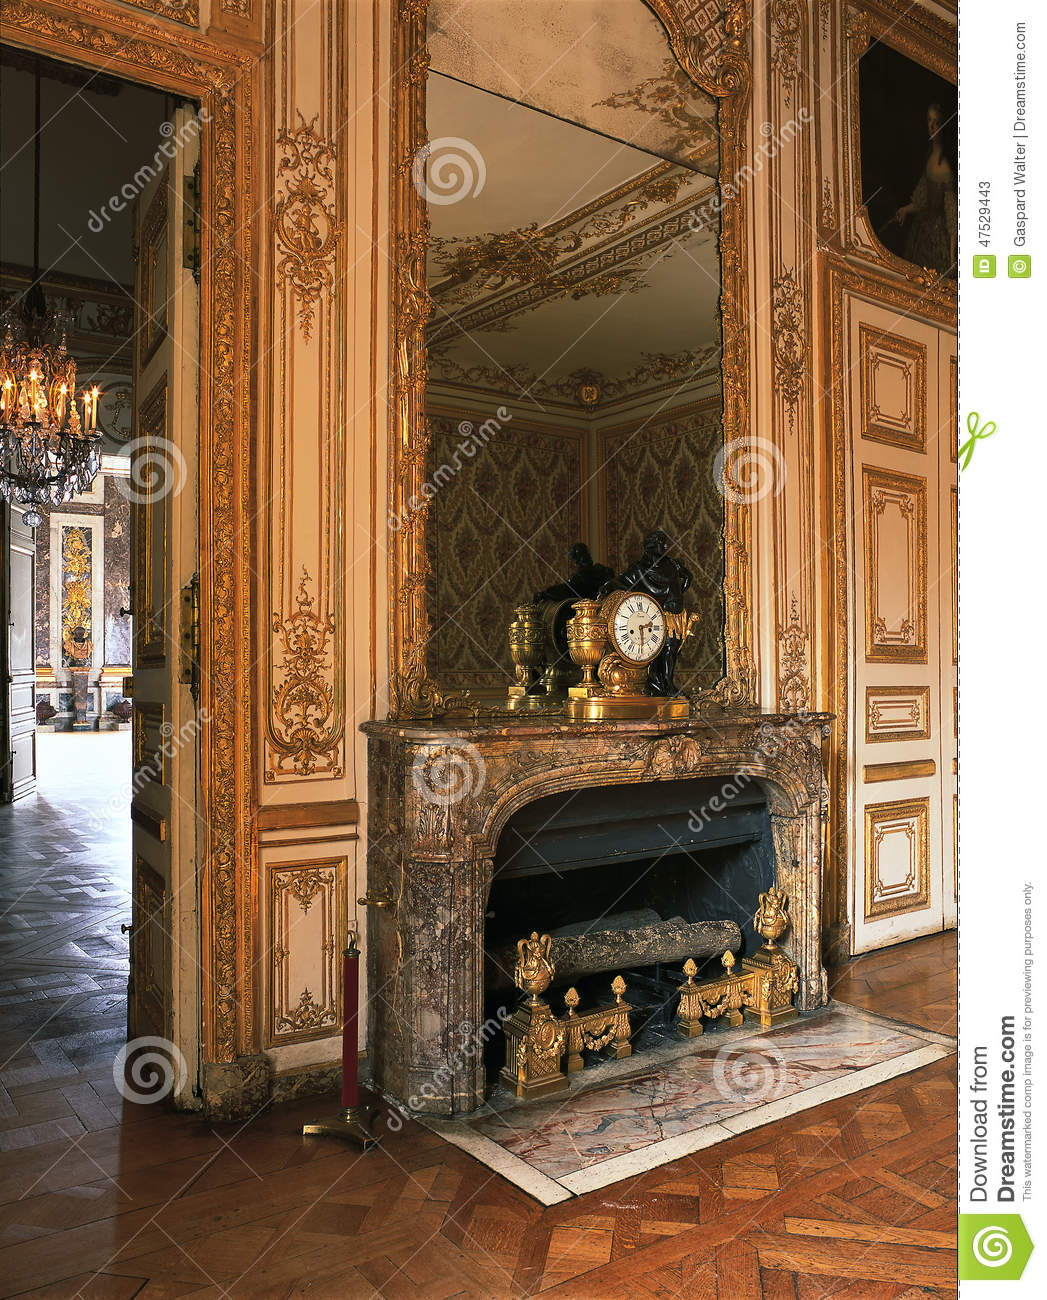 grand miroir sur une chemin e au palais de versailles. Black Bedroom Furniture Sets. Home Design Ideas